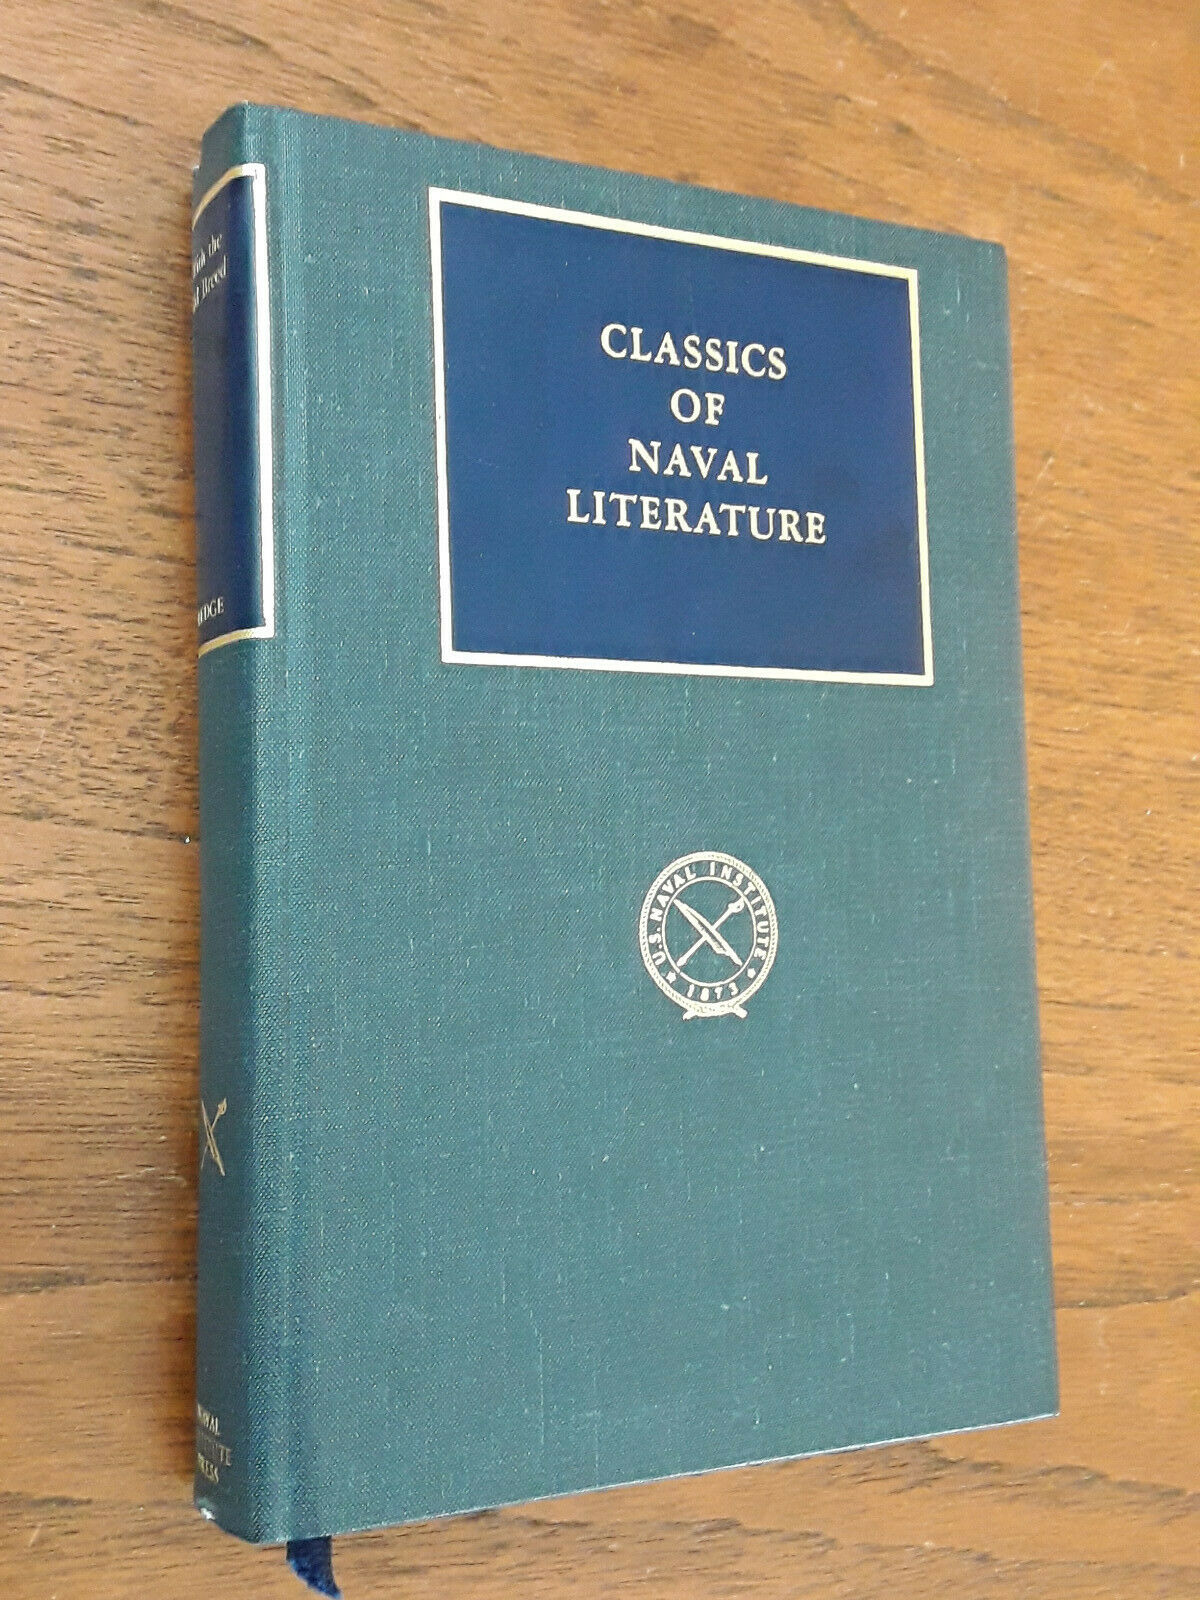 With The Old Breed by E.B. Sledge, Classics of Naval Literature edition, H/C  